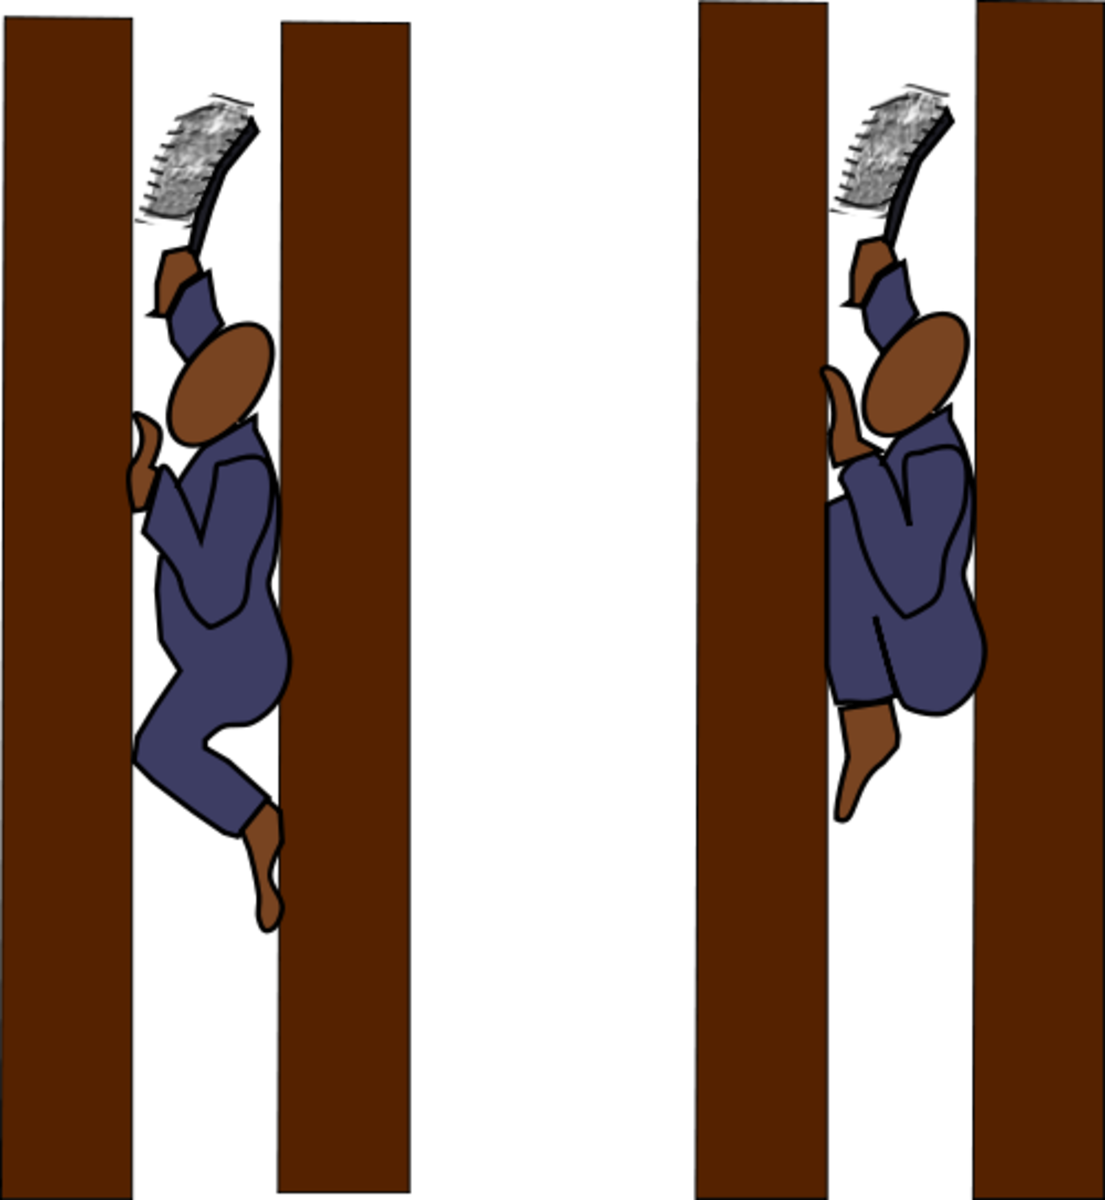 The left chimney sweep is in the correct position. The right chimney sweep has slipped, and is jammed in the chimney. He cannot breathe well or free himself, so a rope is tied to his leg by another child. It's pulled until he's free or dead.